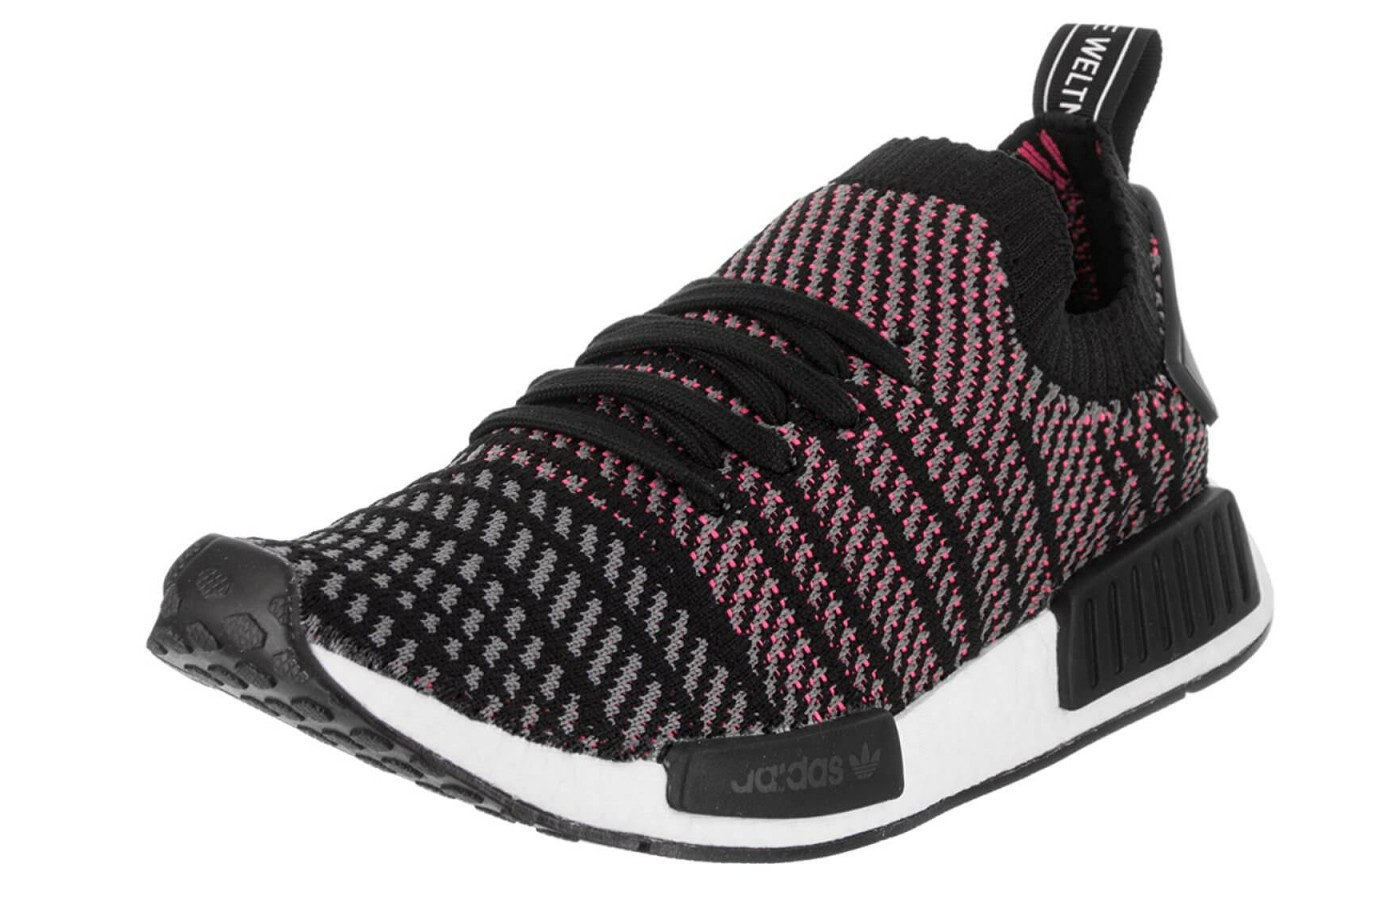 7d7a1af8856f7 The Adidas NMD R1 Stlt Primeknit features a Primeknit upper ...